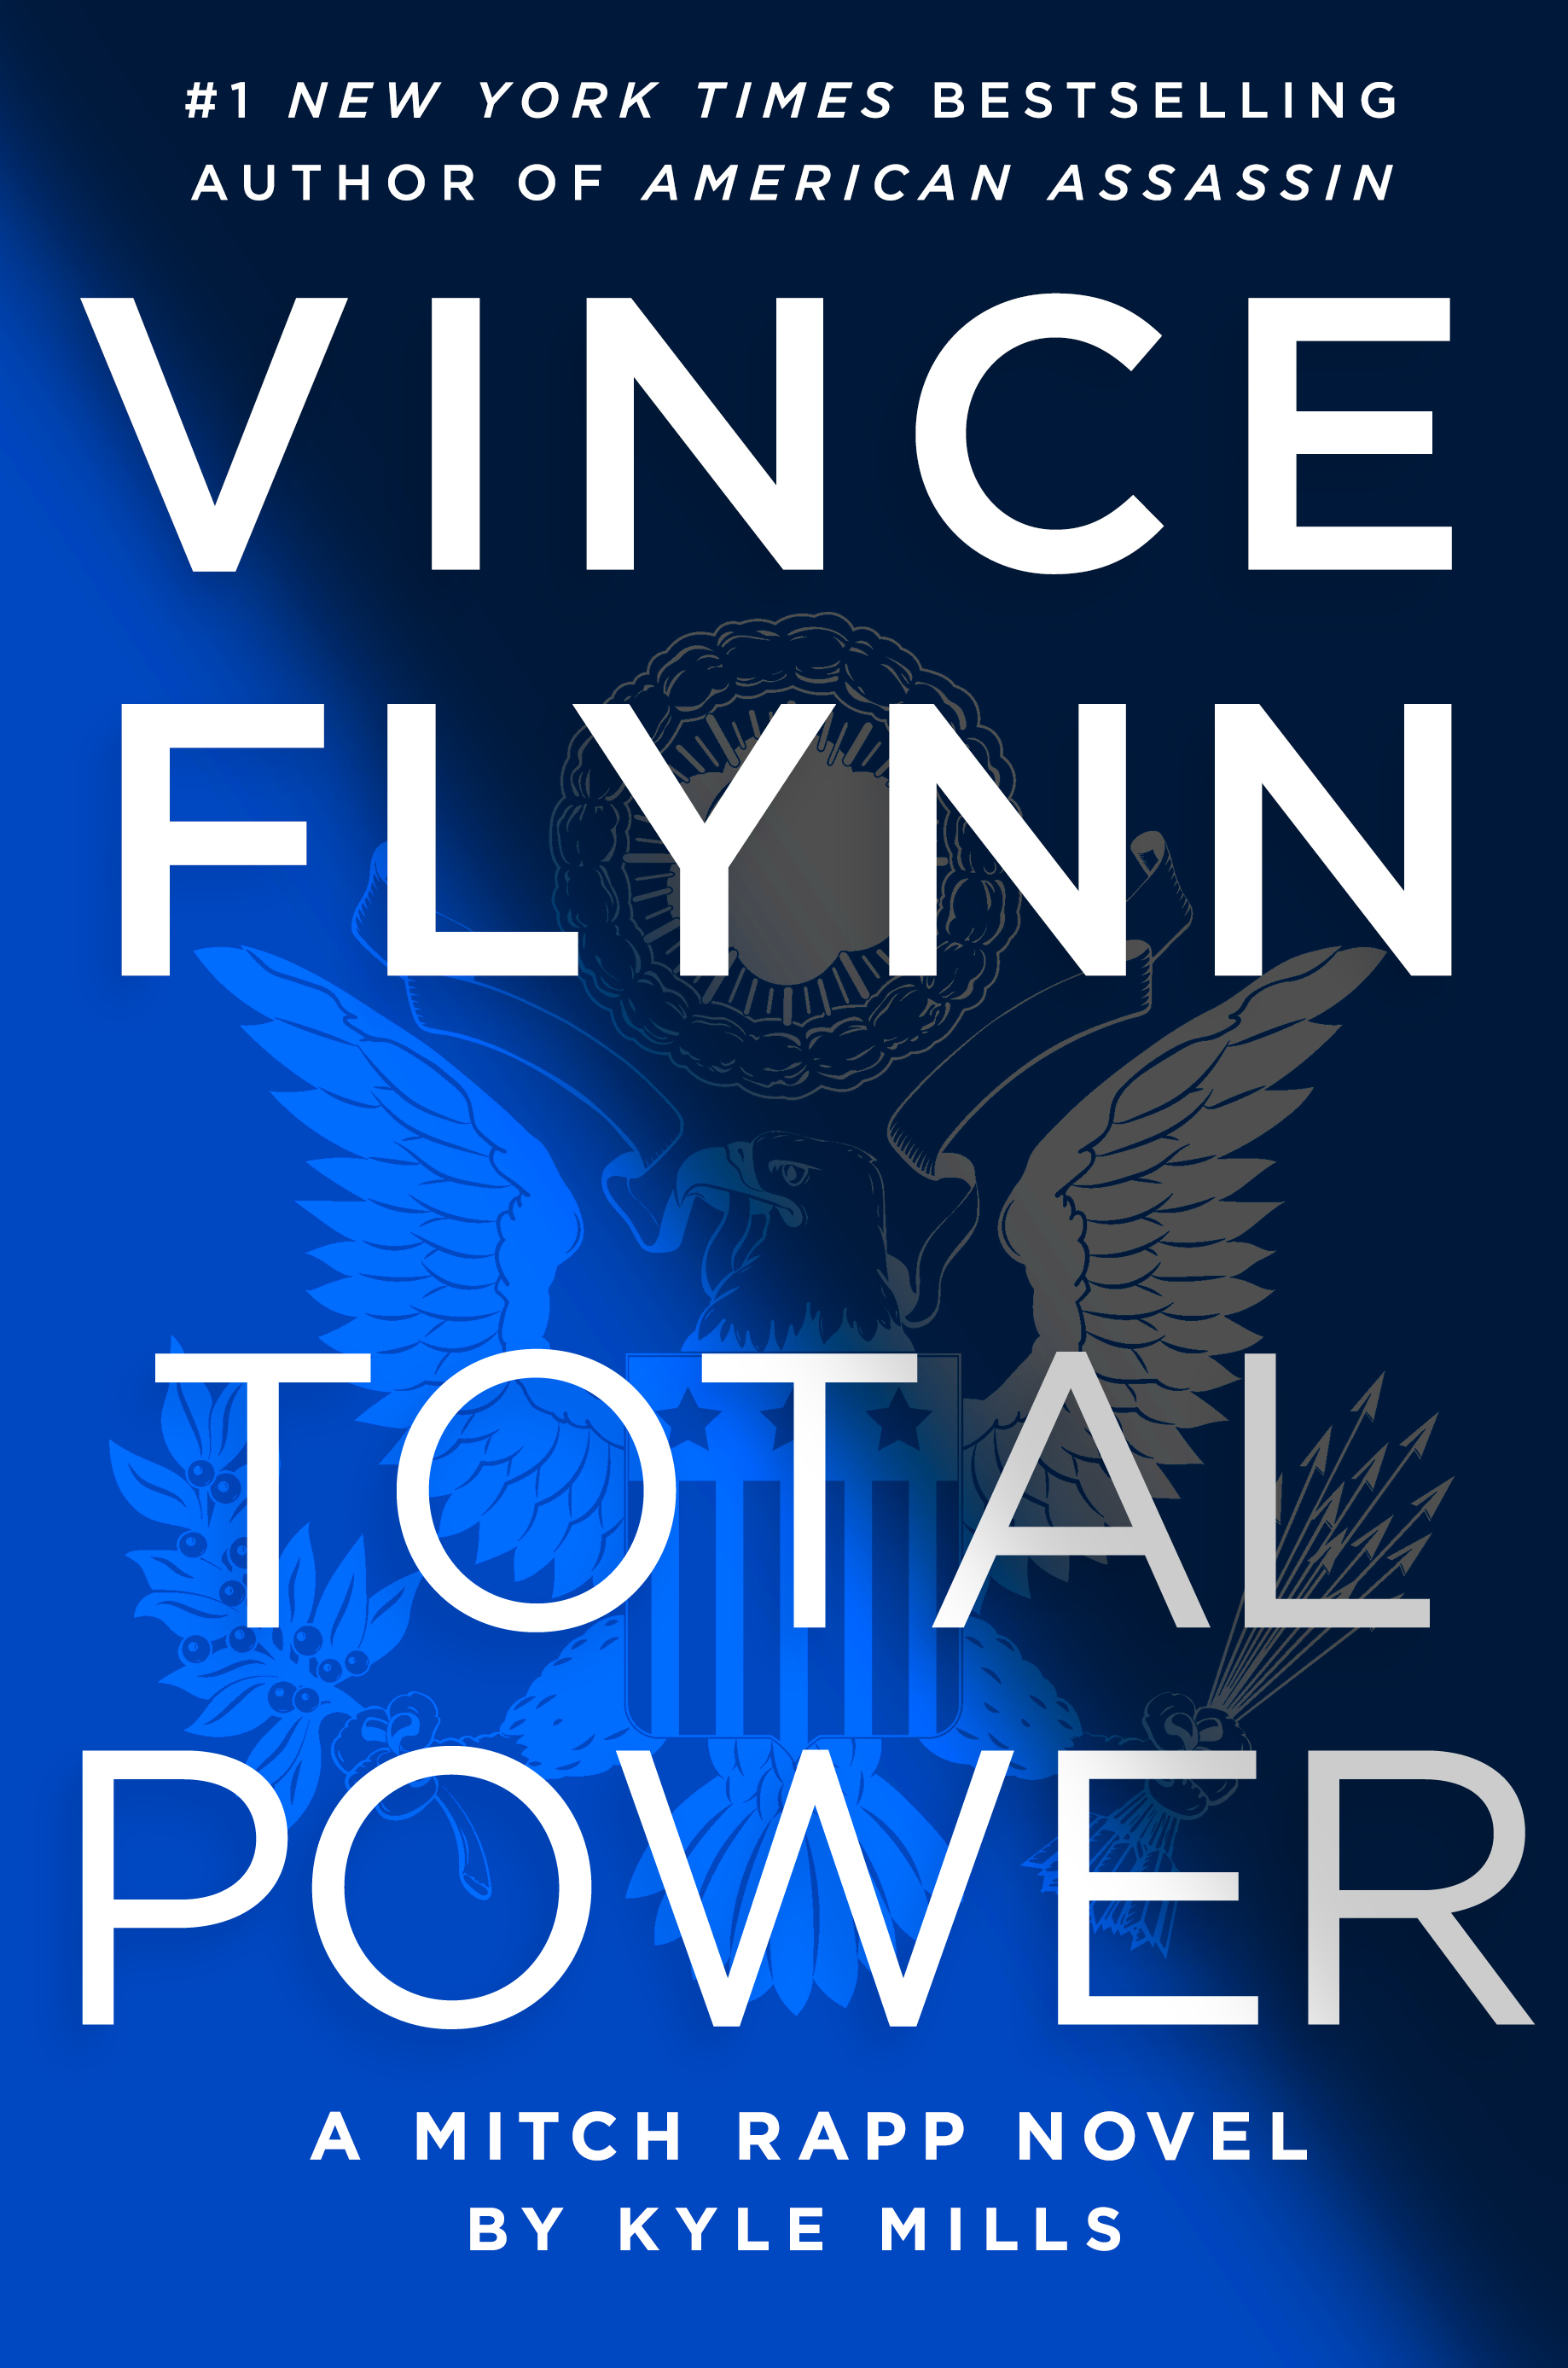 total power by vince flynn, best gifts for book lovers